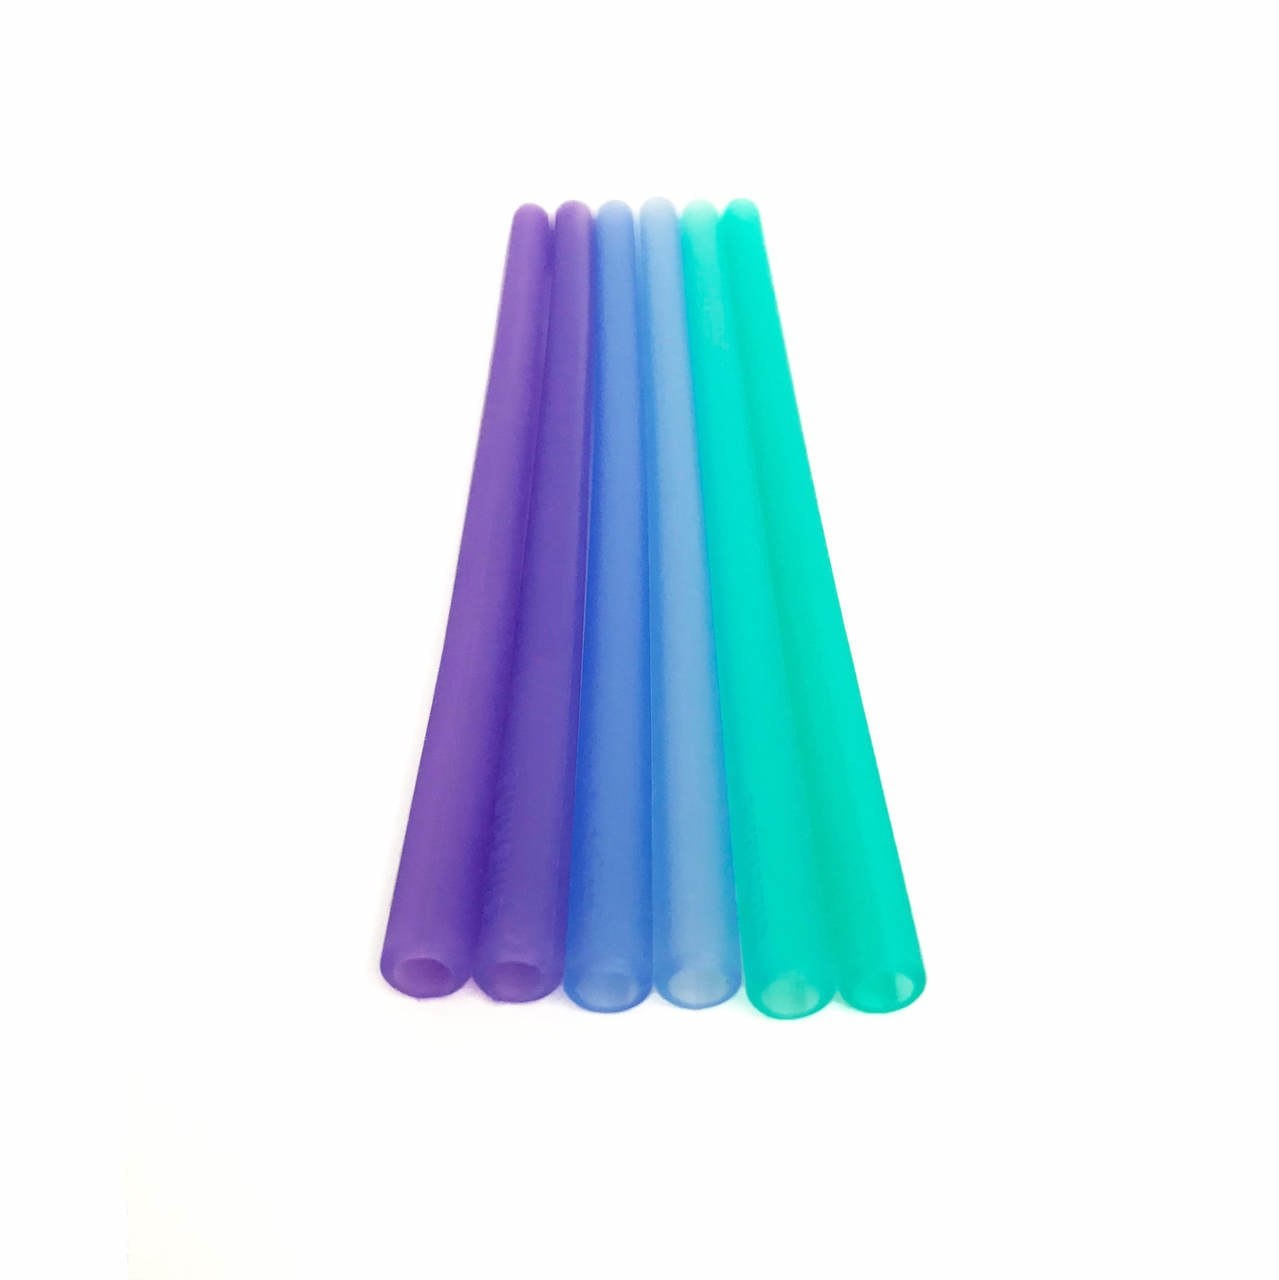 Silikids Reusable Silicone Straws 6-Pack